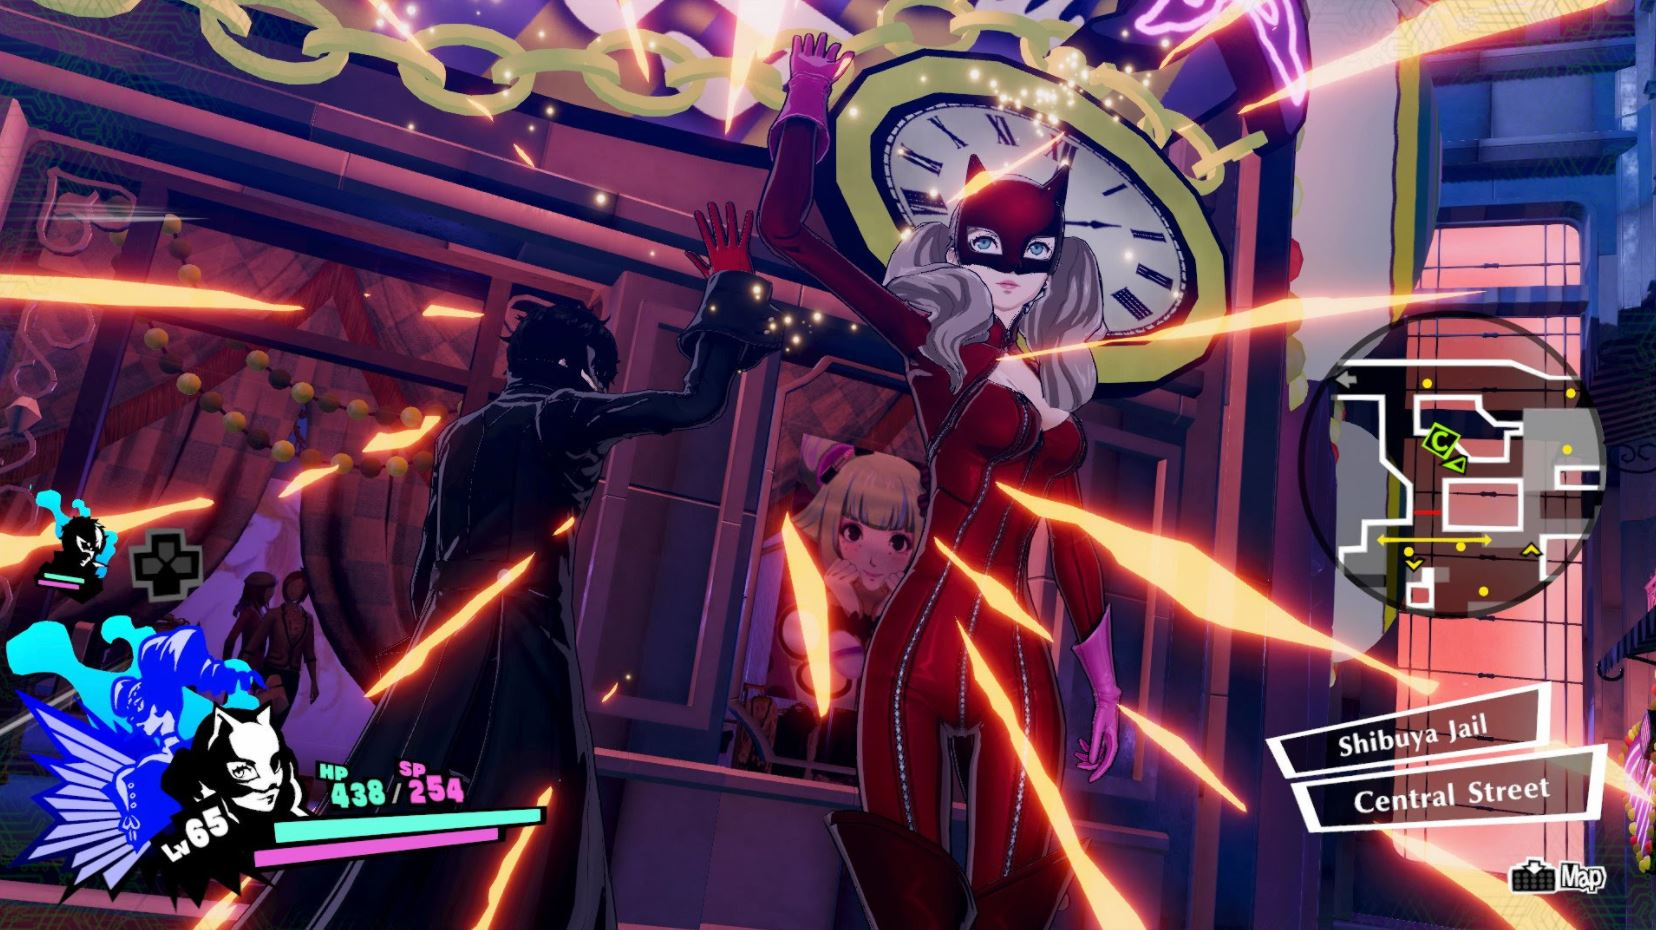 persona-5-strikers-hands-on-preview-ps4-personas-style-and-gameplay-translated-excellently-to-a-new-genre-2